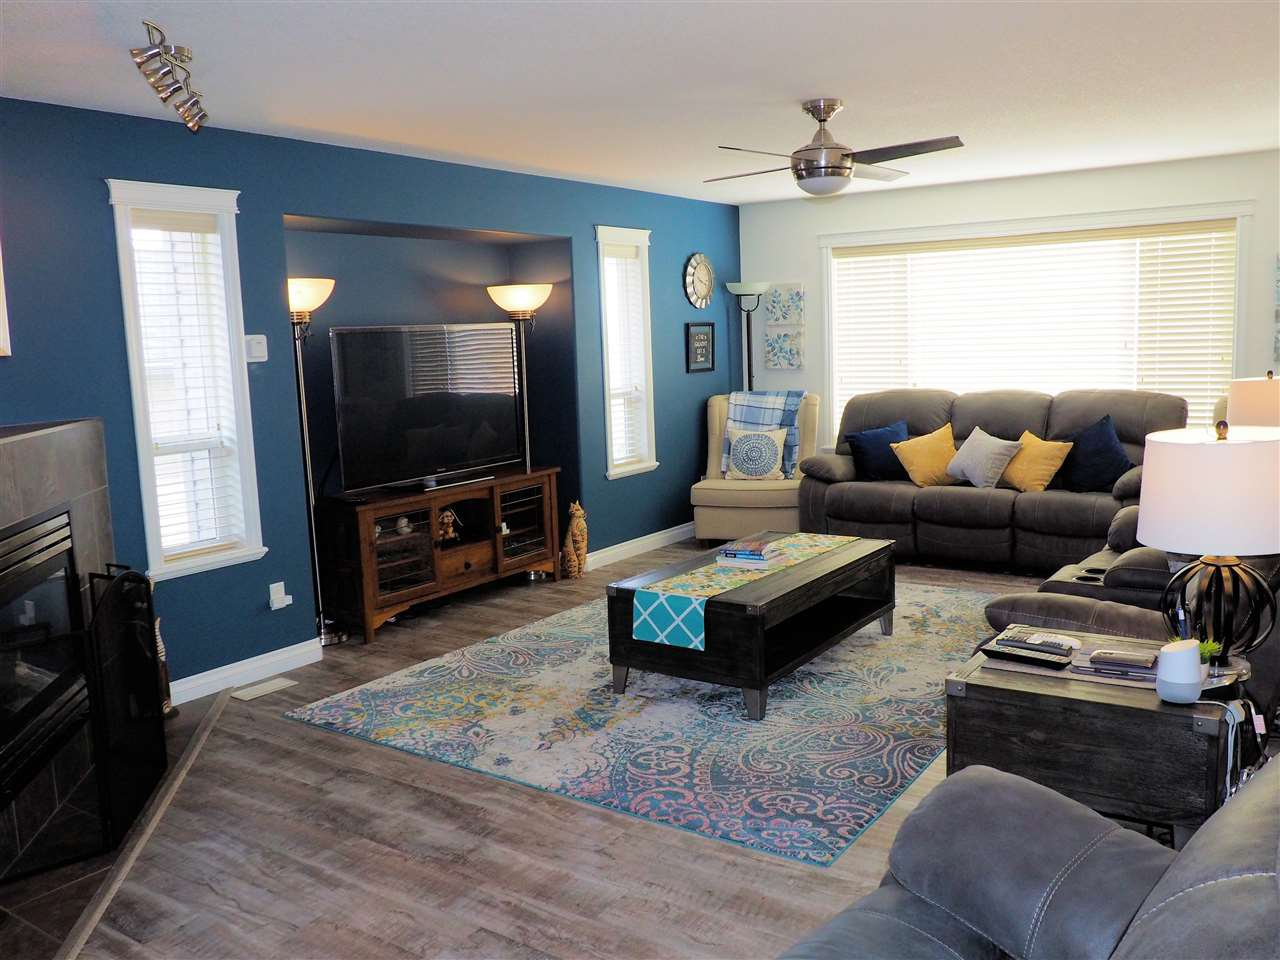 Photo 10: Photos: 7627 GRAYSHELL Road in Prince George: St. Lawrence Heights House for sale (PG City South (Zone 74))  : MLS®# R2438648